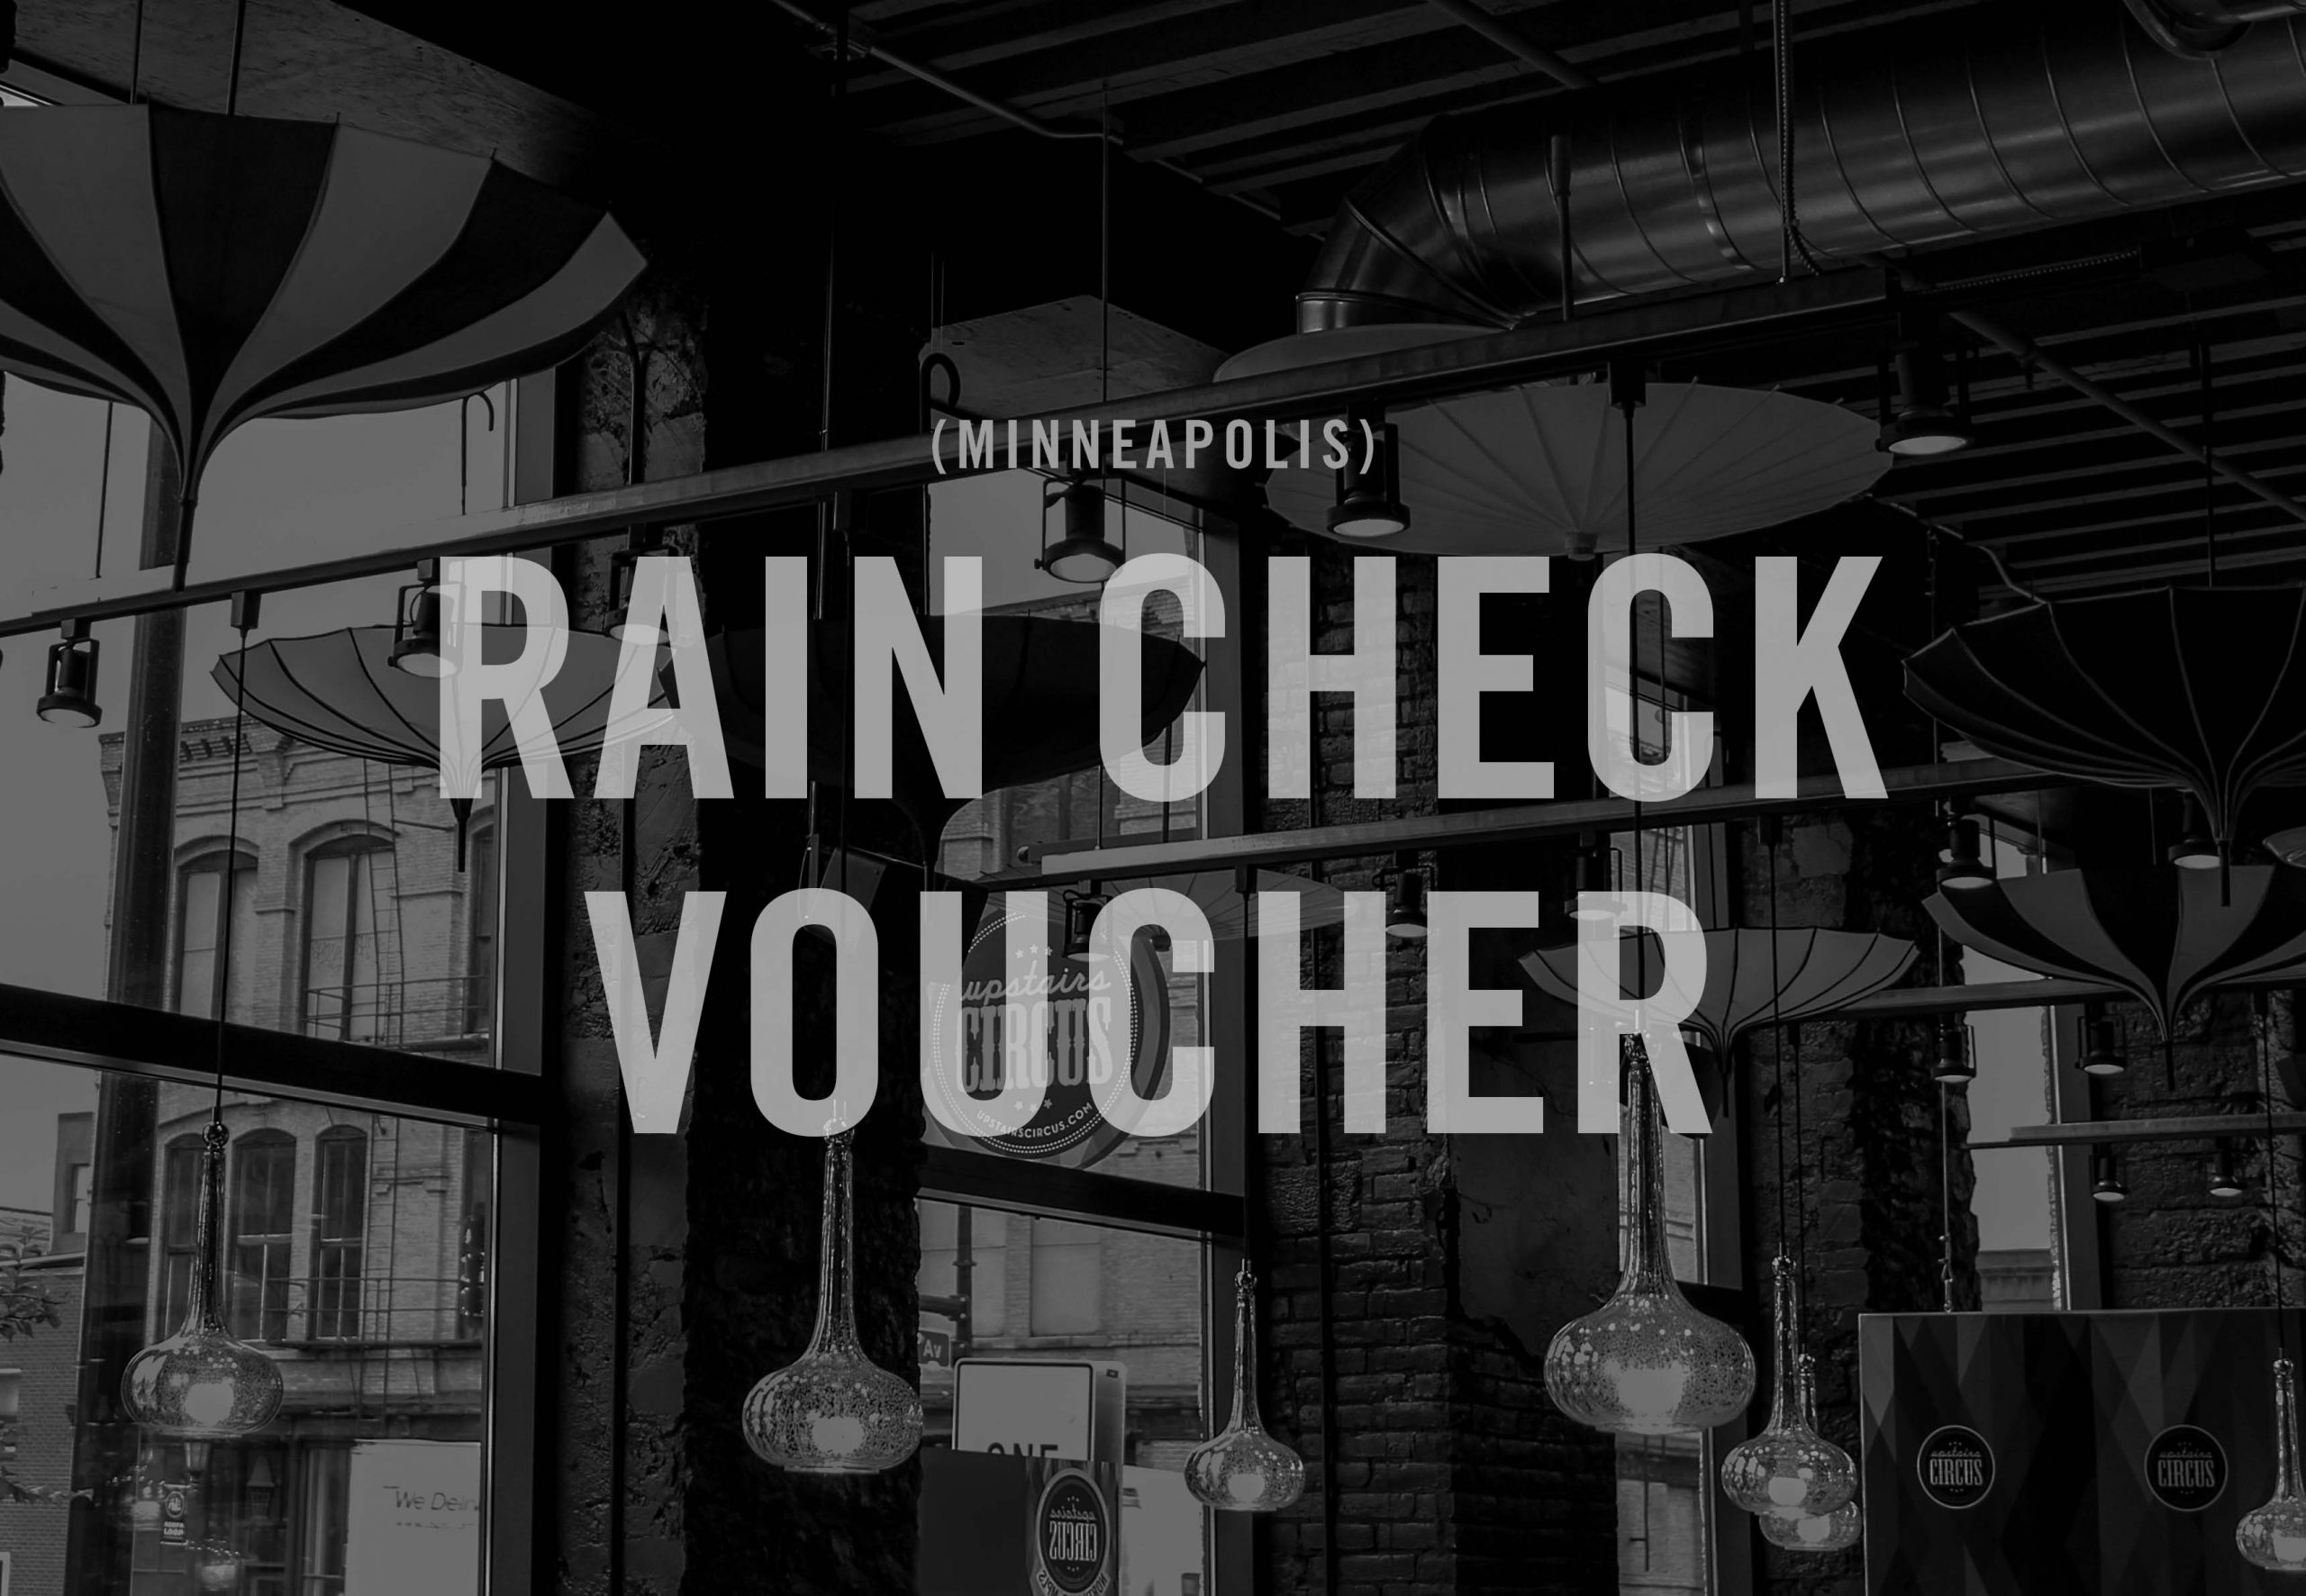 Upstairs Circus Rain Check Voucher MPLS